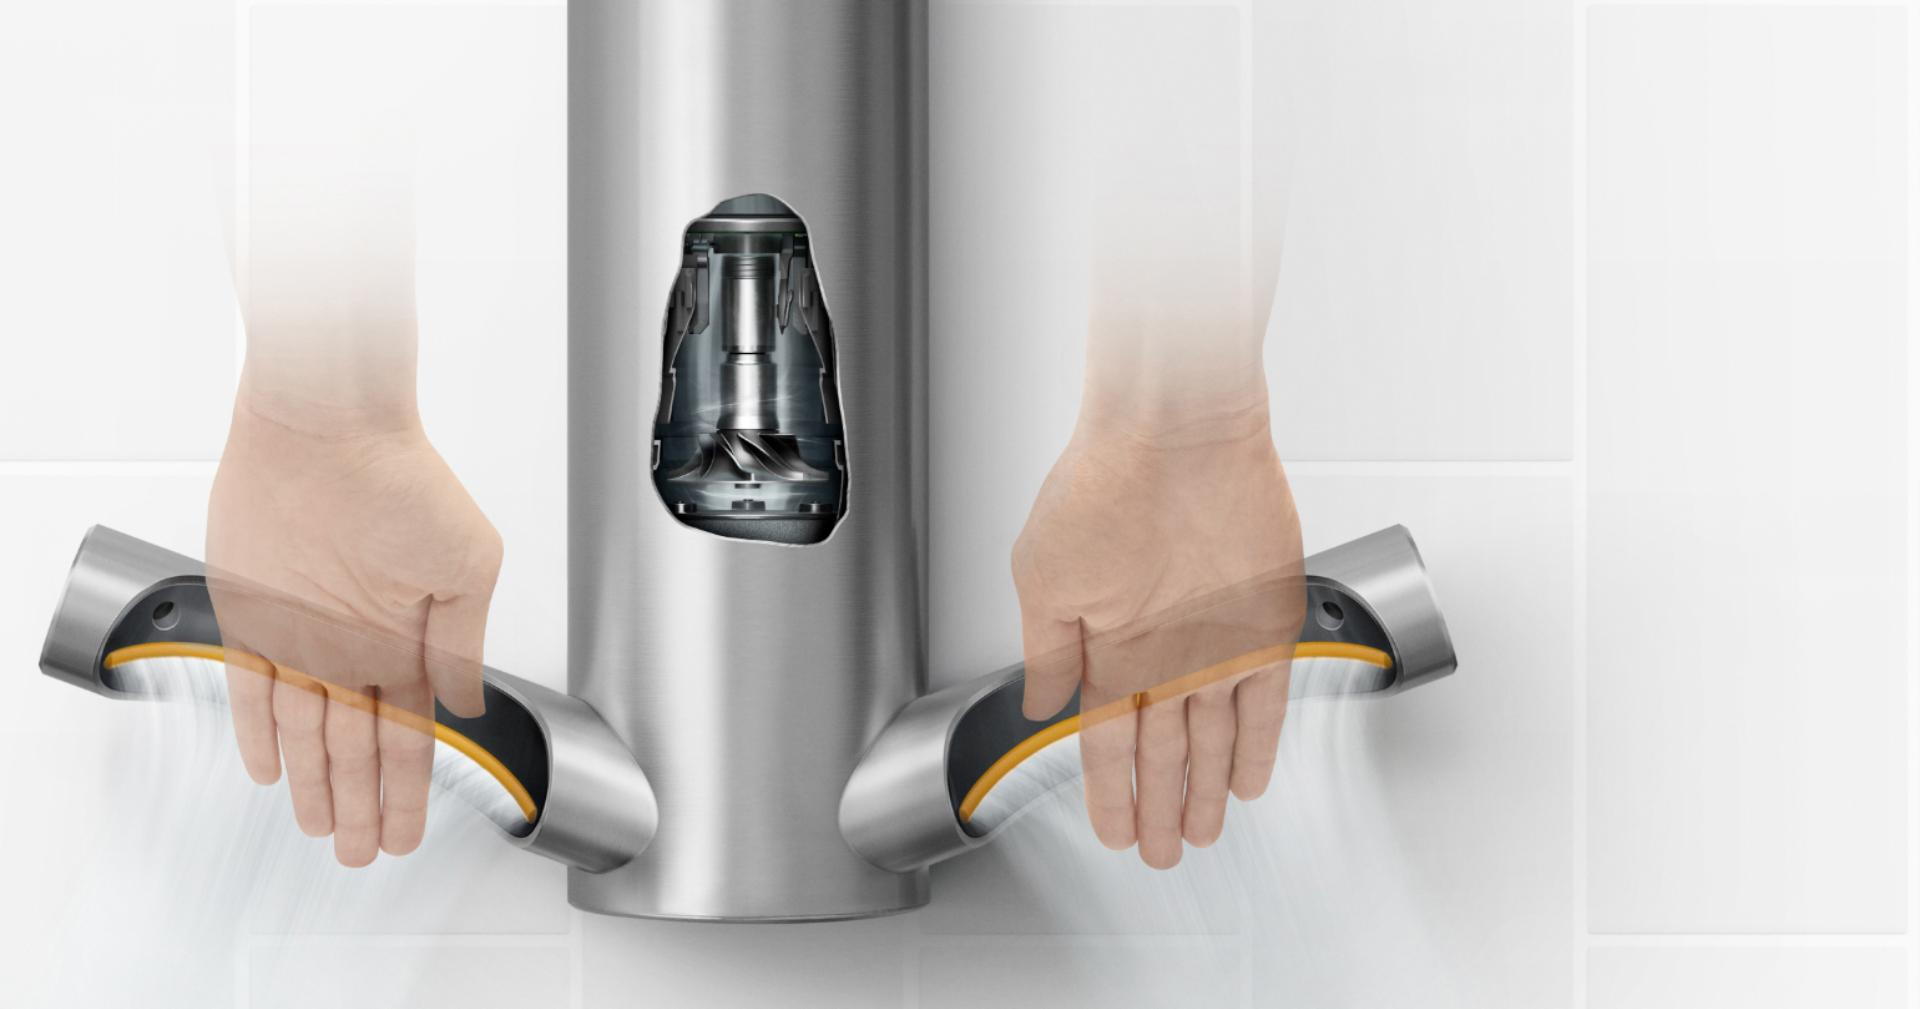 Model standing next to Dyson Airblade 9kJ hand dryer